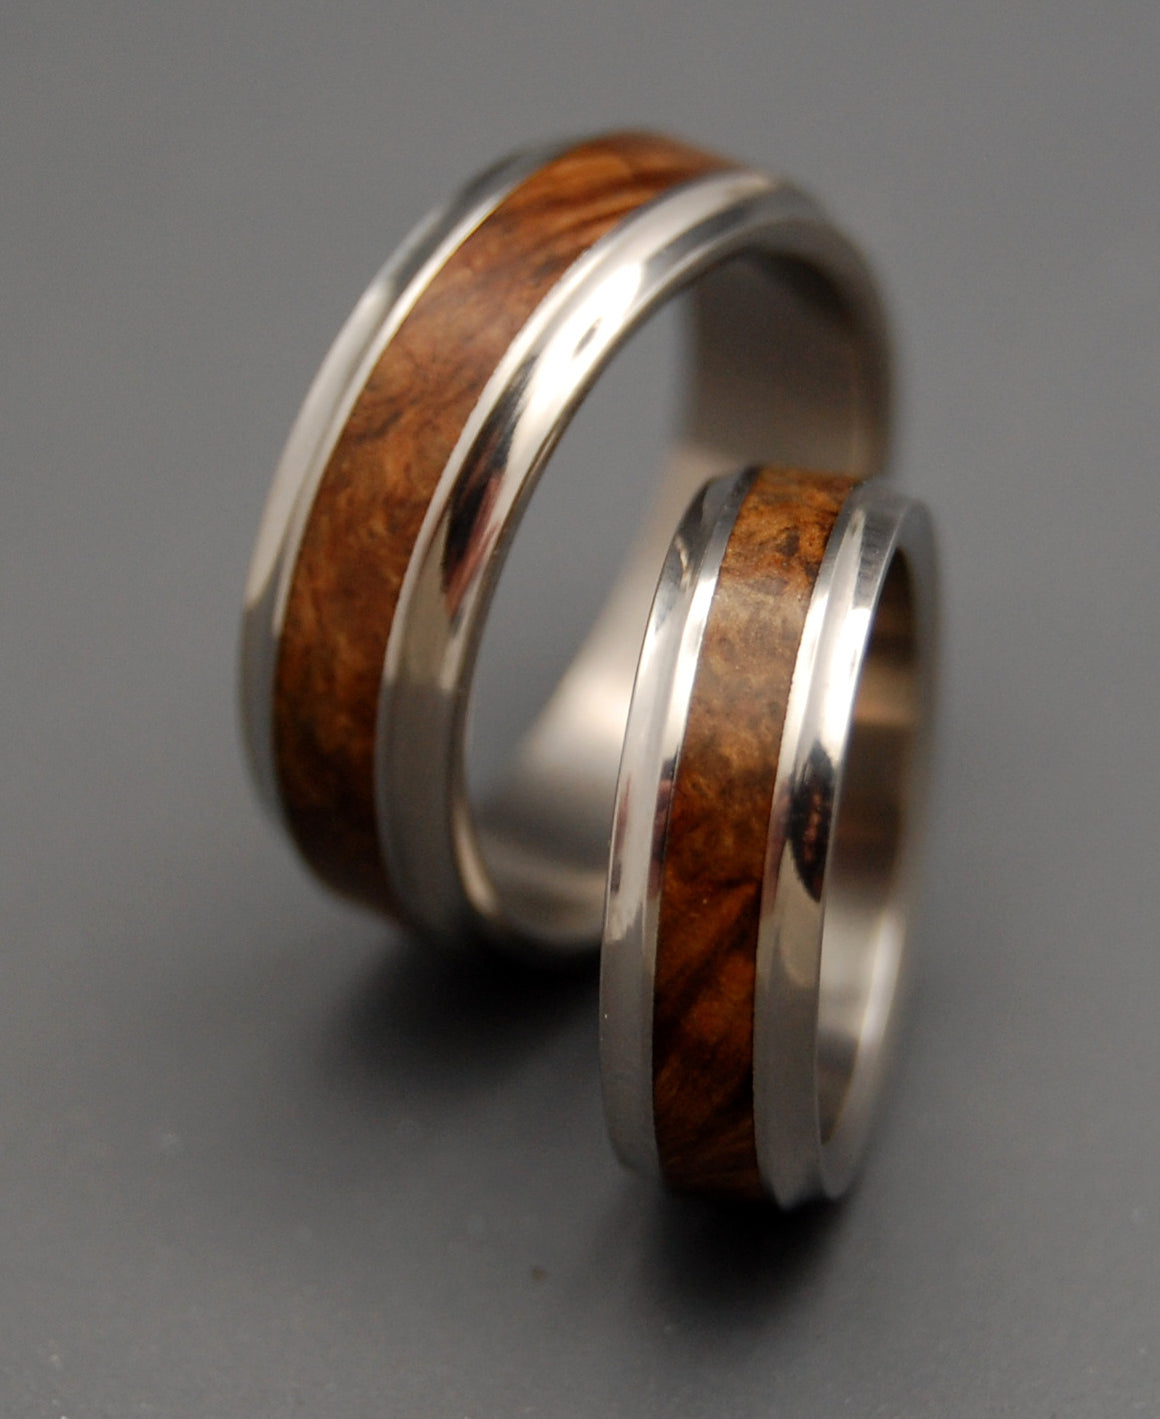 Windham | Wooden Wedding Ring Set - Minter and Richter Designs